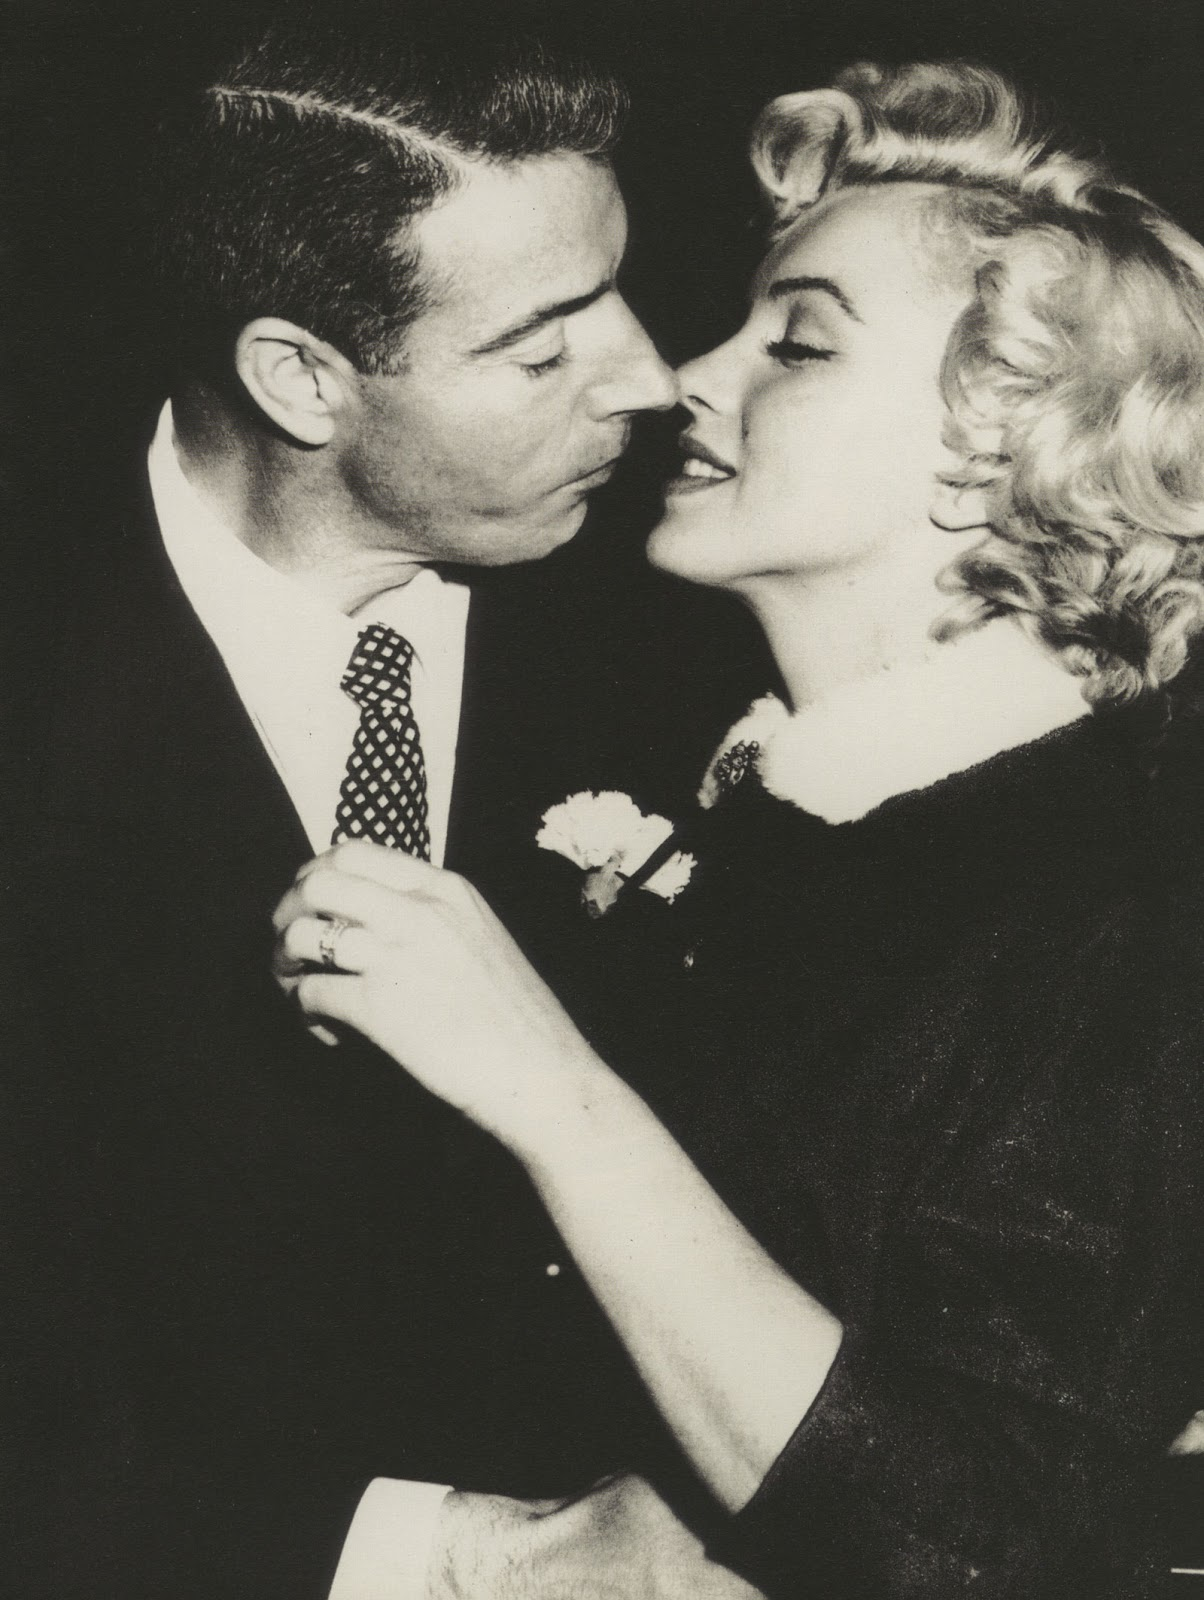 http://3.bp.blogspot.com/-73pEBzdr6Hs/TuVeGiBwvpI/AAAAAAAACT8/tF70LNrw5EQ/s1600/Joe-DiMaggio-and-Marilyn-Monroe-wearing-the-ring-to-be-auctioned-on-their-wedding-day-in-1954..jpg